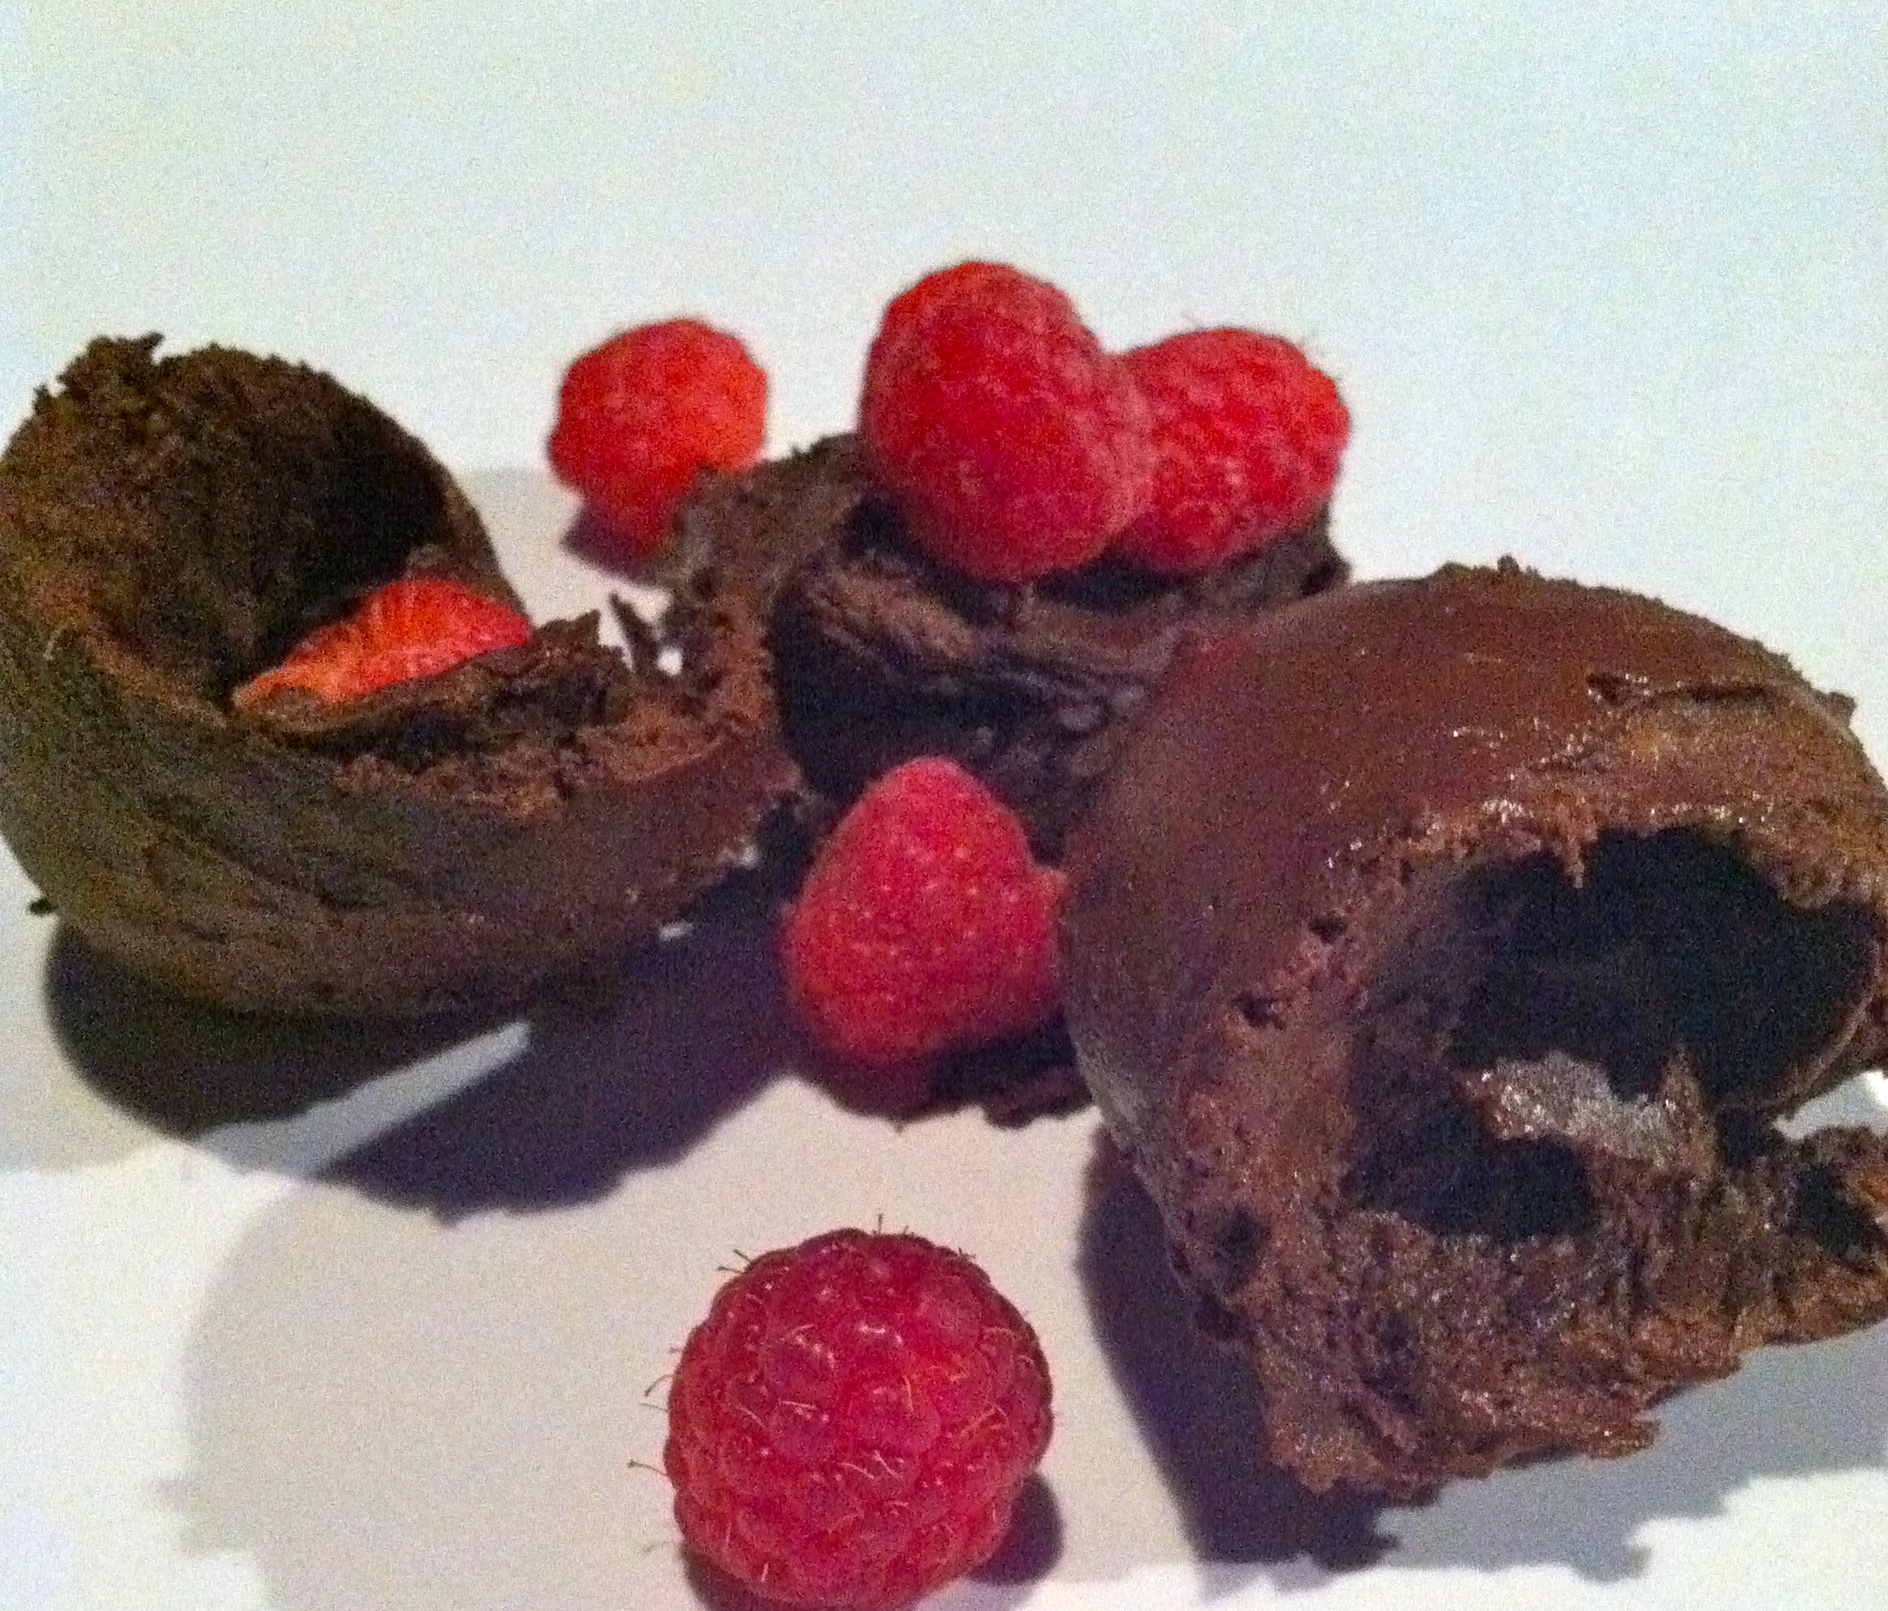 Raw Vegan Chocolate Avocado Mousse